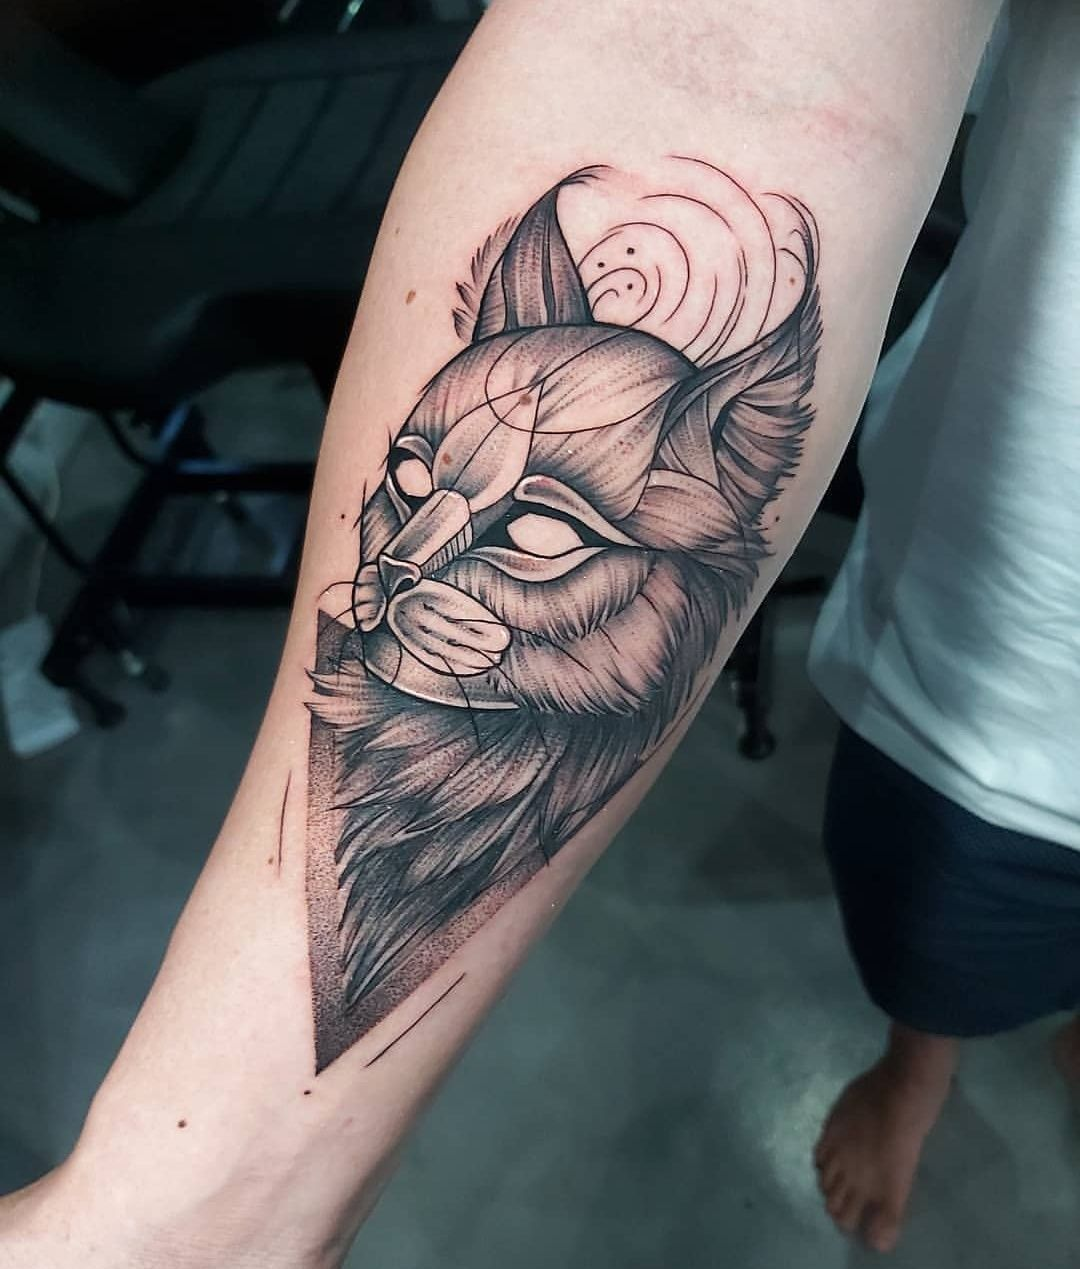 My First Tattoo Wild Cat Sketch Style Piece Done By Francelle Coetzee At True Blue Tattoo Studio In Pretoria South Africa In 2020 Blue Tattoo First Tattoo Tattoos